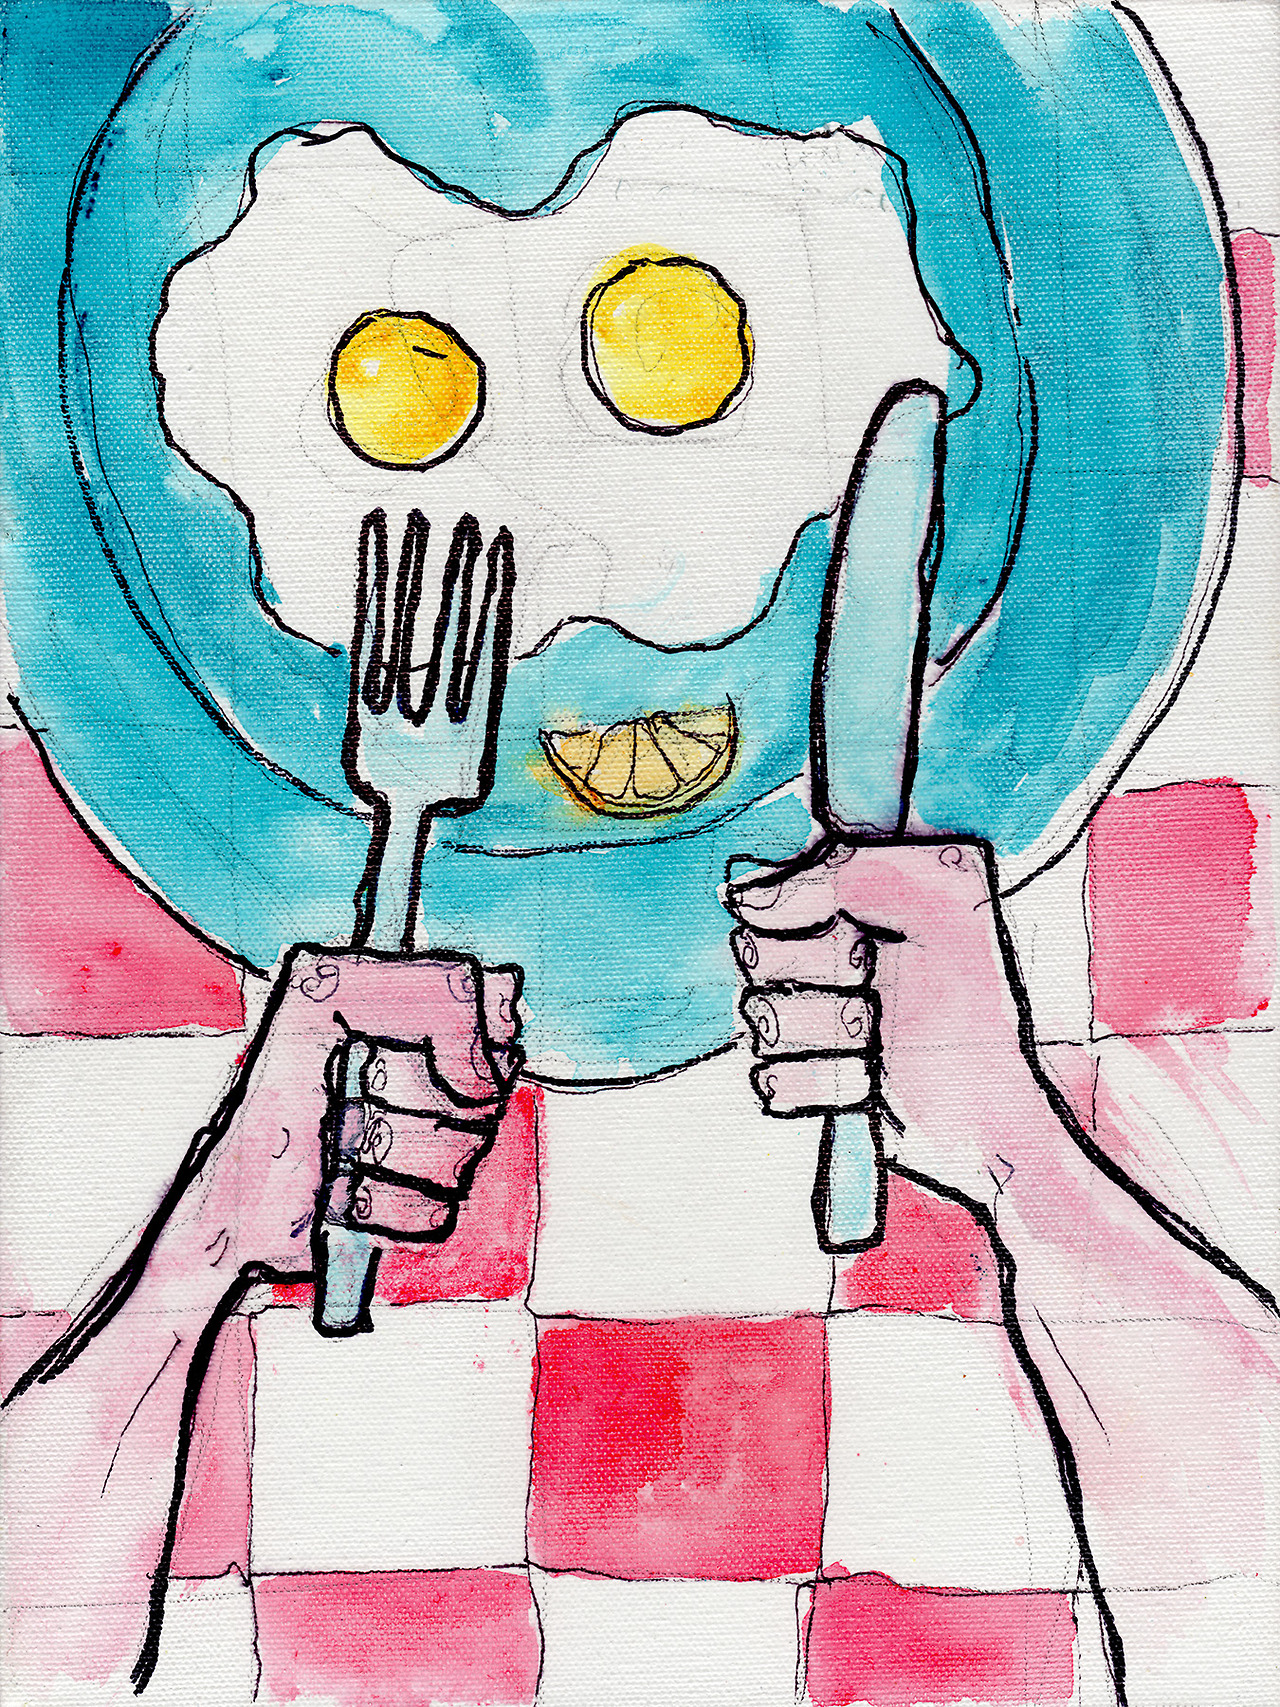 "4/4/13 -  FPS Bruncher .   Some days you just want a good plate of eggs.   9"" x 12"" Acrylic paint, sharpie, pencil, polyurethane on canvas.   Available to purchase here:  http://taylorwinder.bigcartel.com    Prints available here:  http://society6.com/taylorwinder"